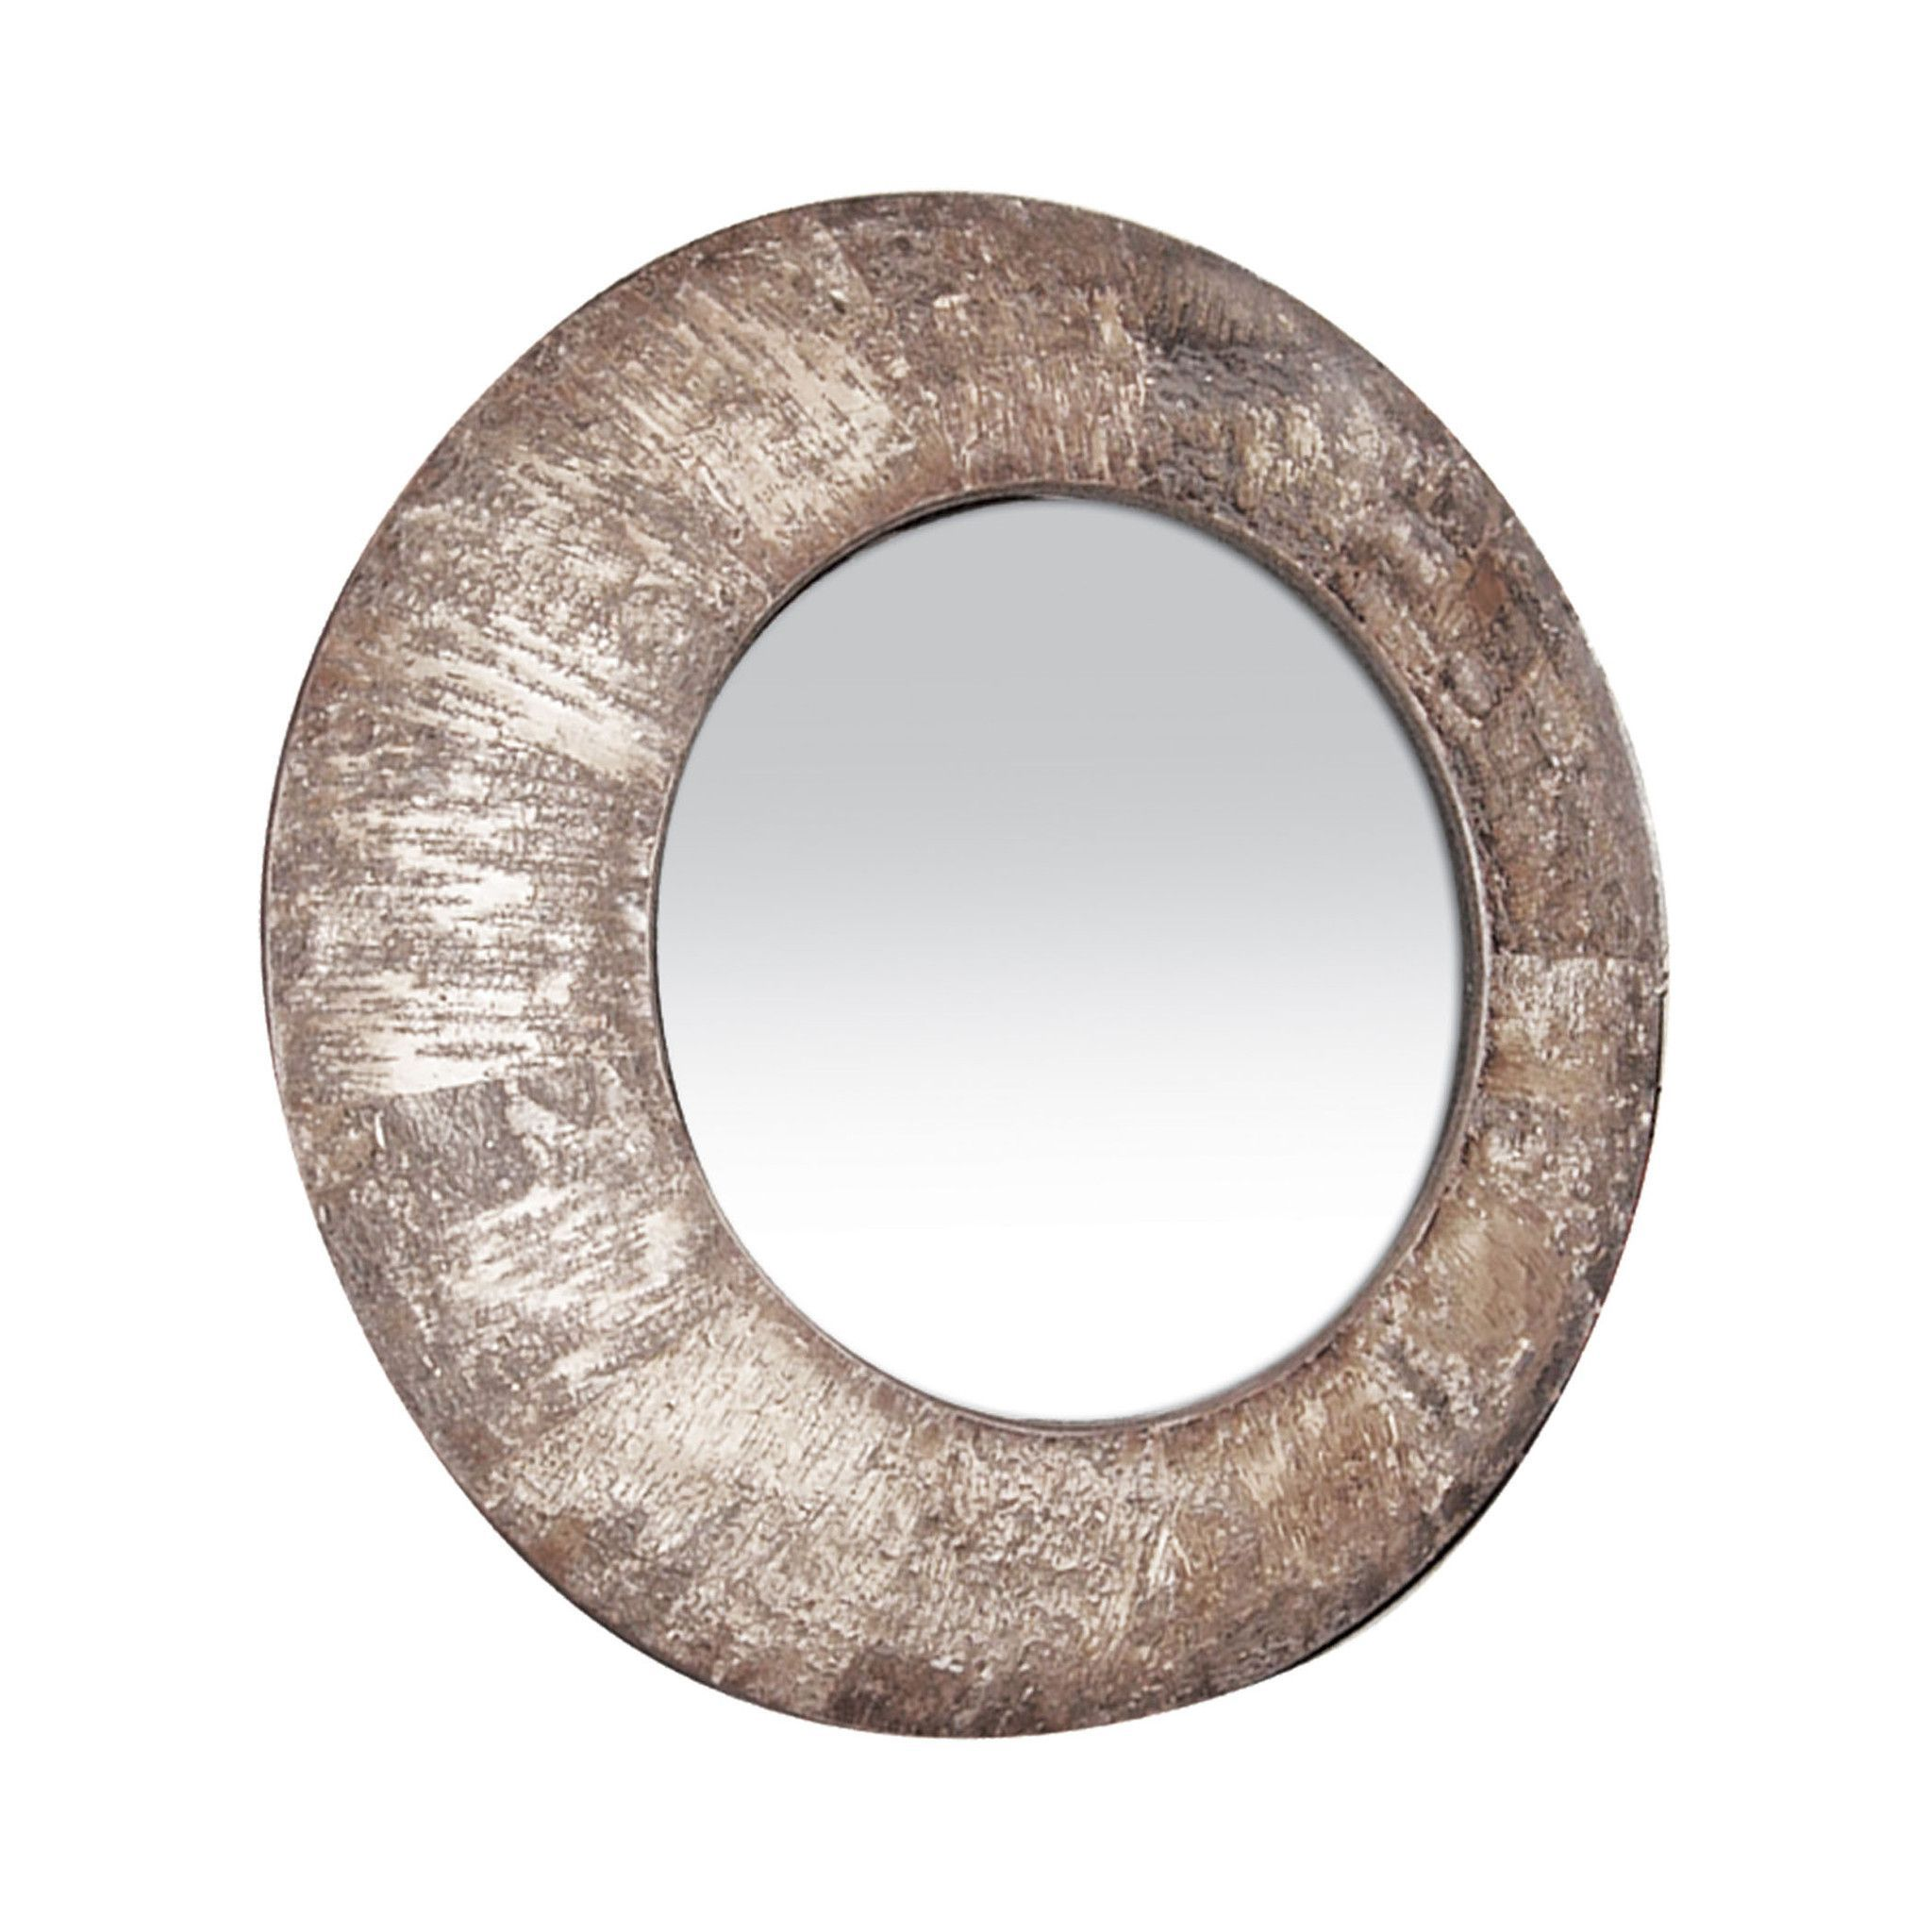 Natural Birch Bark Mirror Natural Birch Bark | Birch bark and Products